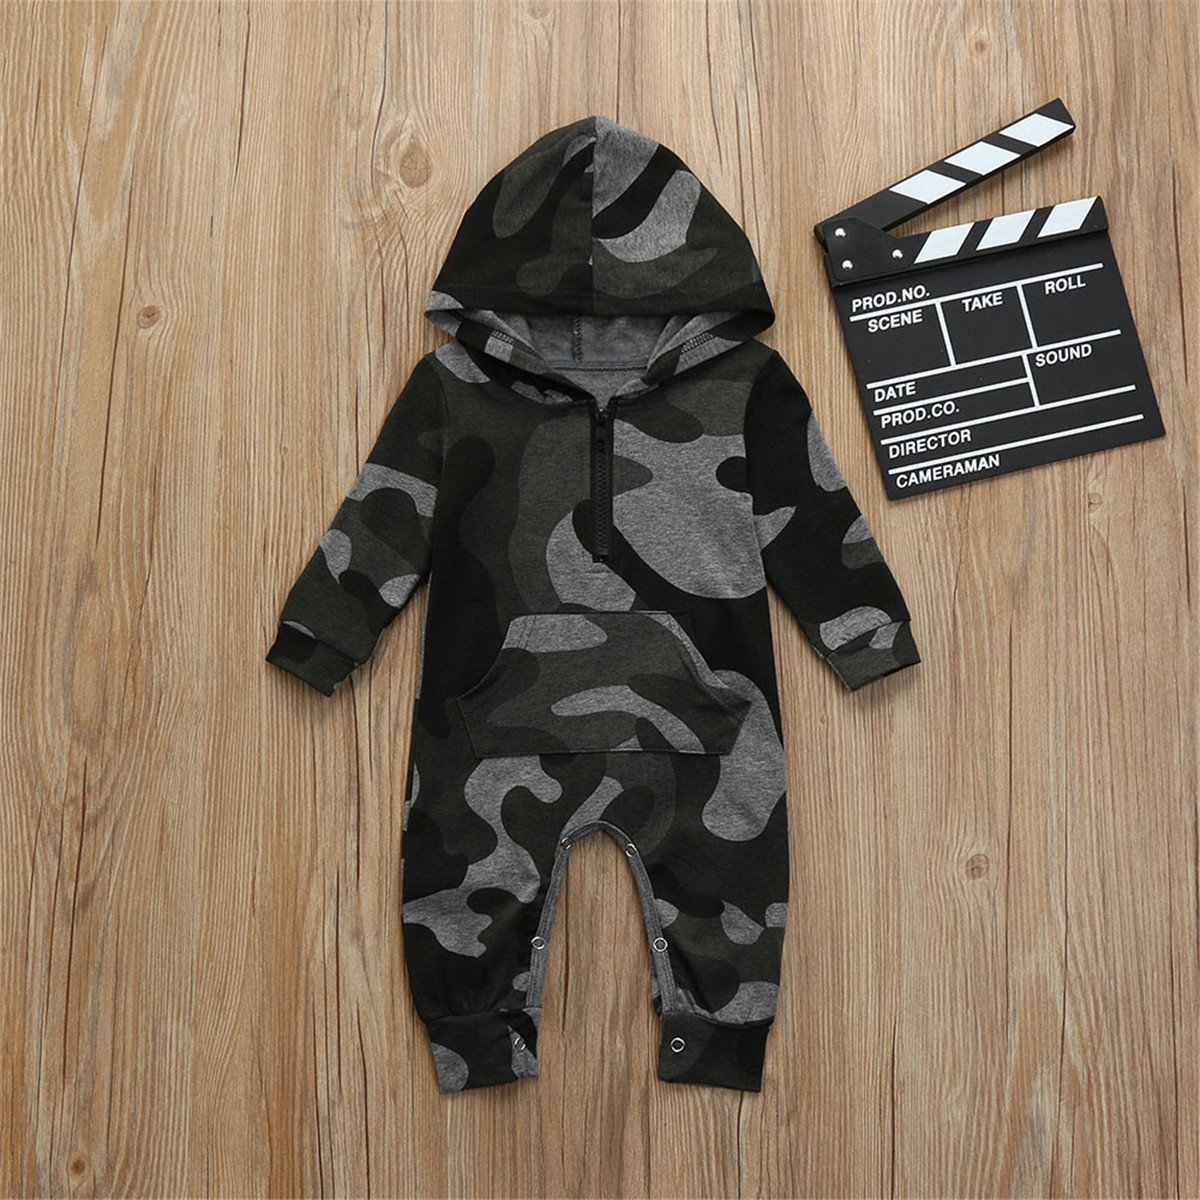 d2a7426f090a Bellelove Newborn Kids Infant Baby Outfits Clothes